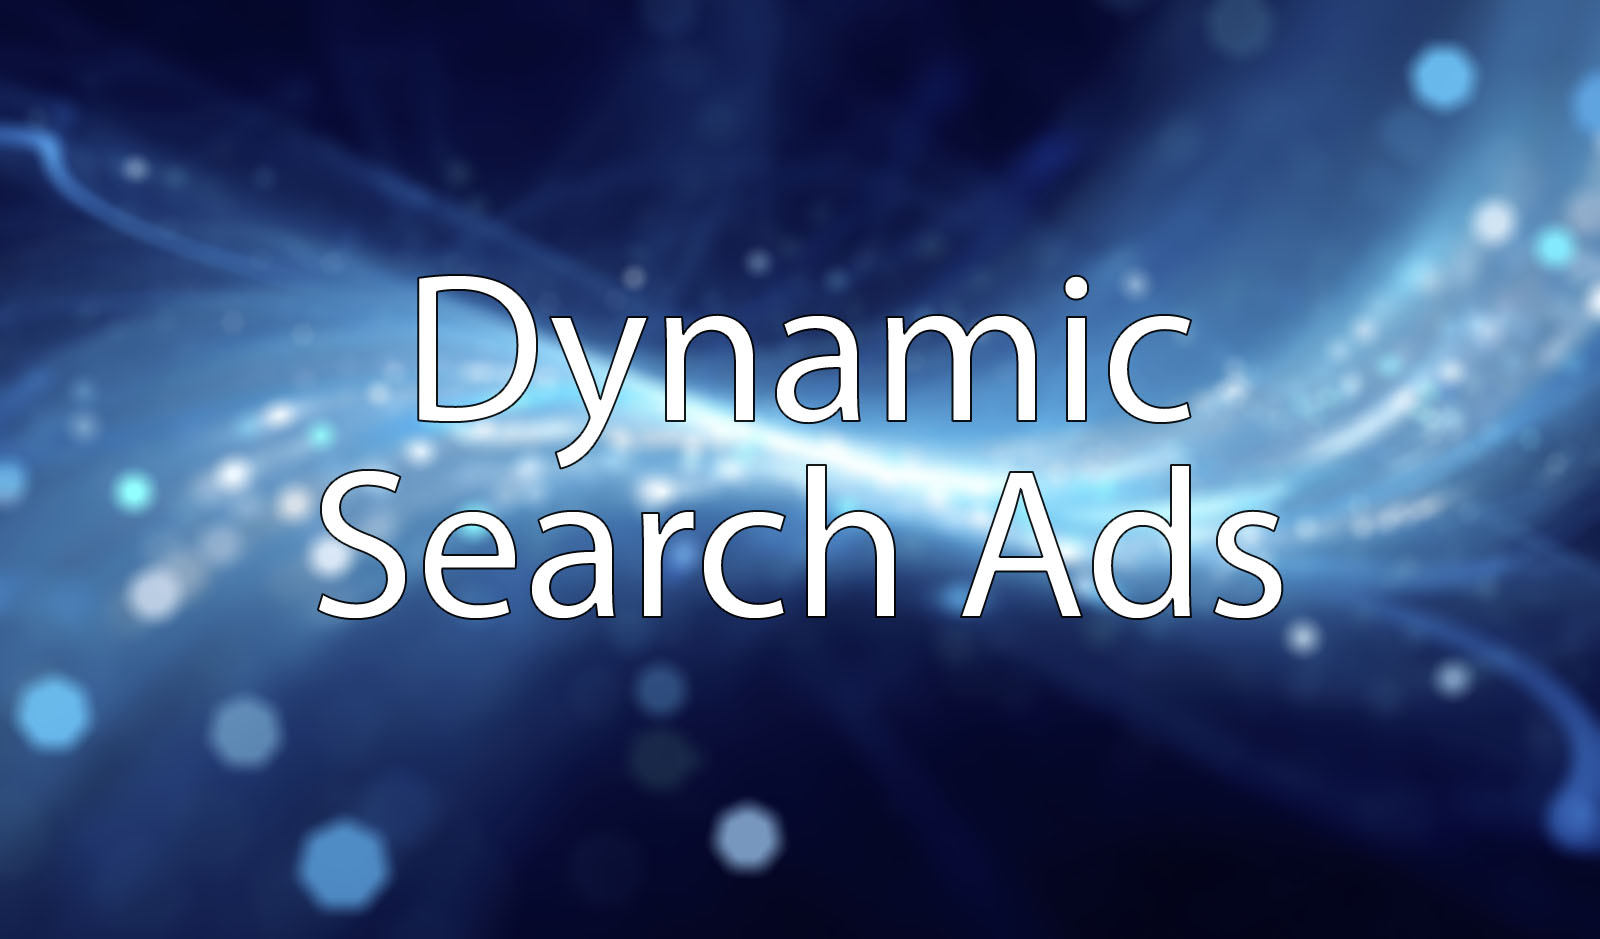 Dynamic search ads på lysende bakgrunn